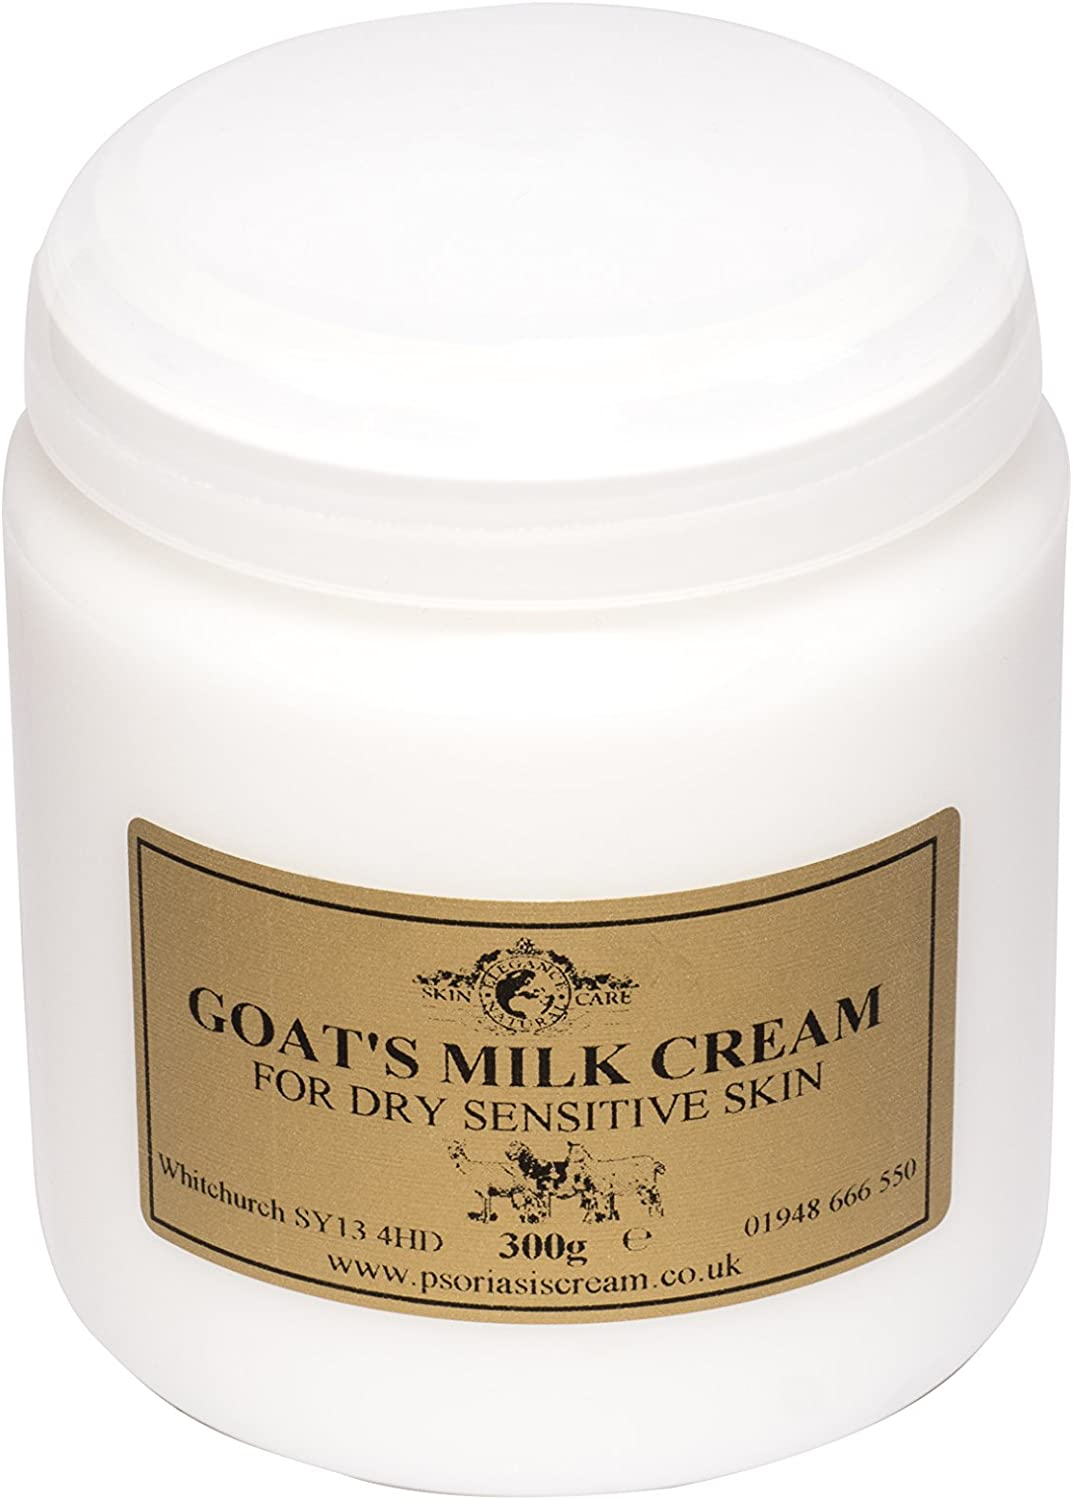 Goat S Milk Moisturising Cream 300g By Elegance Natural Skin Care For Psoriasis Eczema Dry Skin Dermatitis Rosacea Sensitive By Elegance Natural Skin Care Amazon De Drogerie Körperpflege